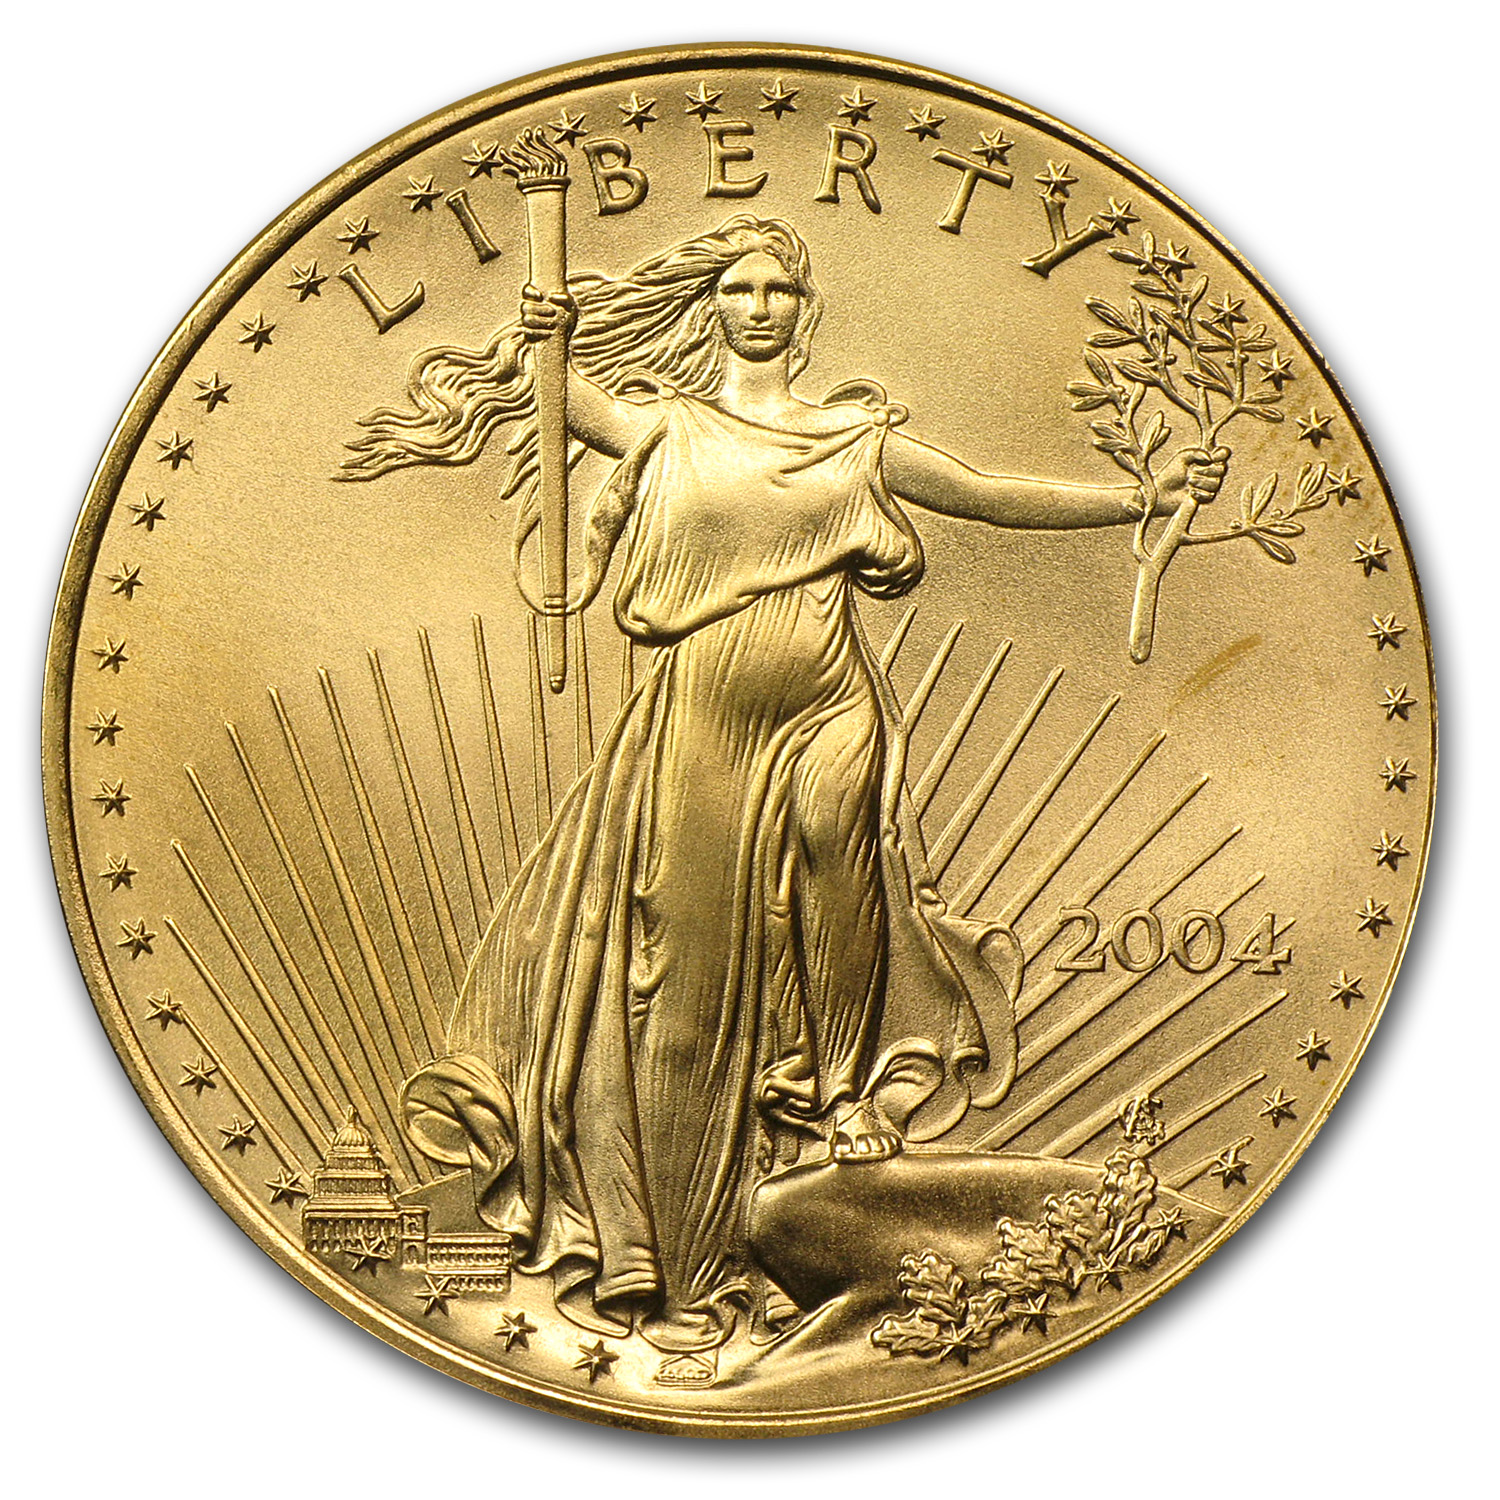 2004 1 oz Gold American Eagle (BU)